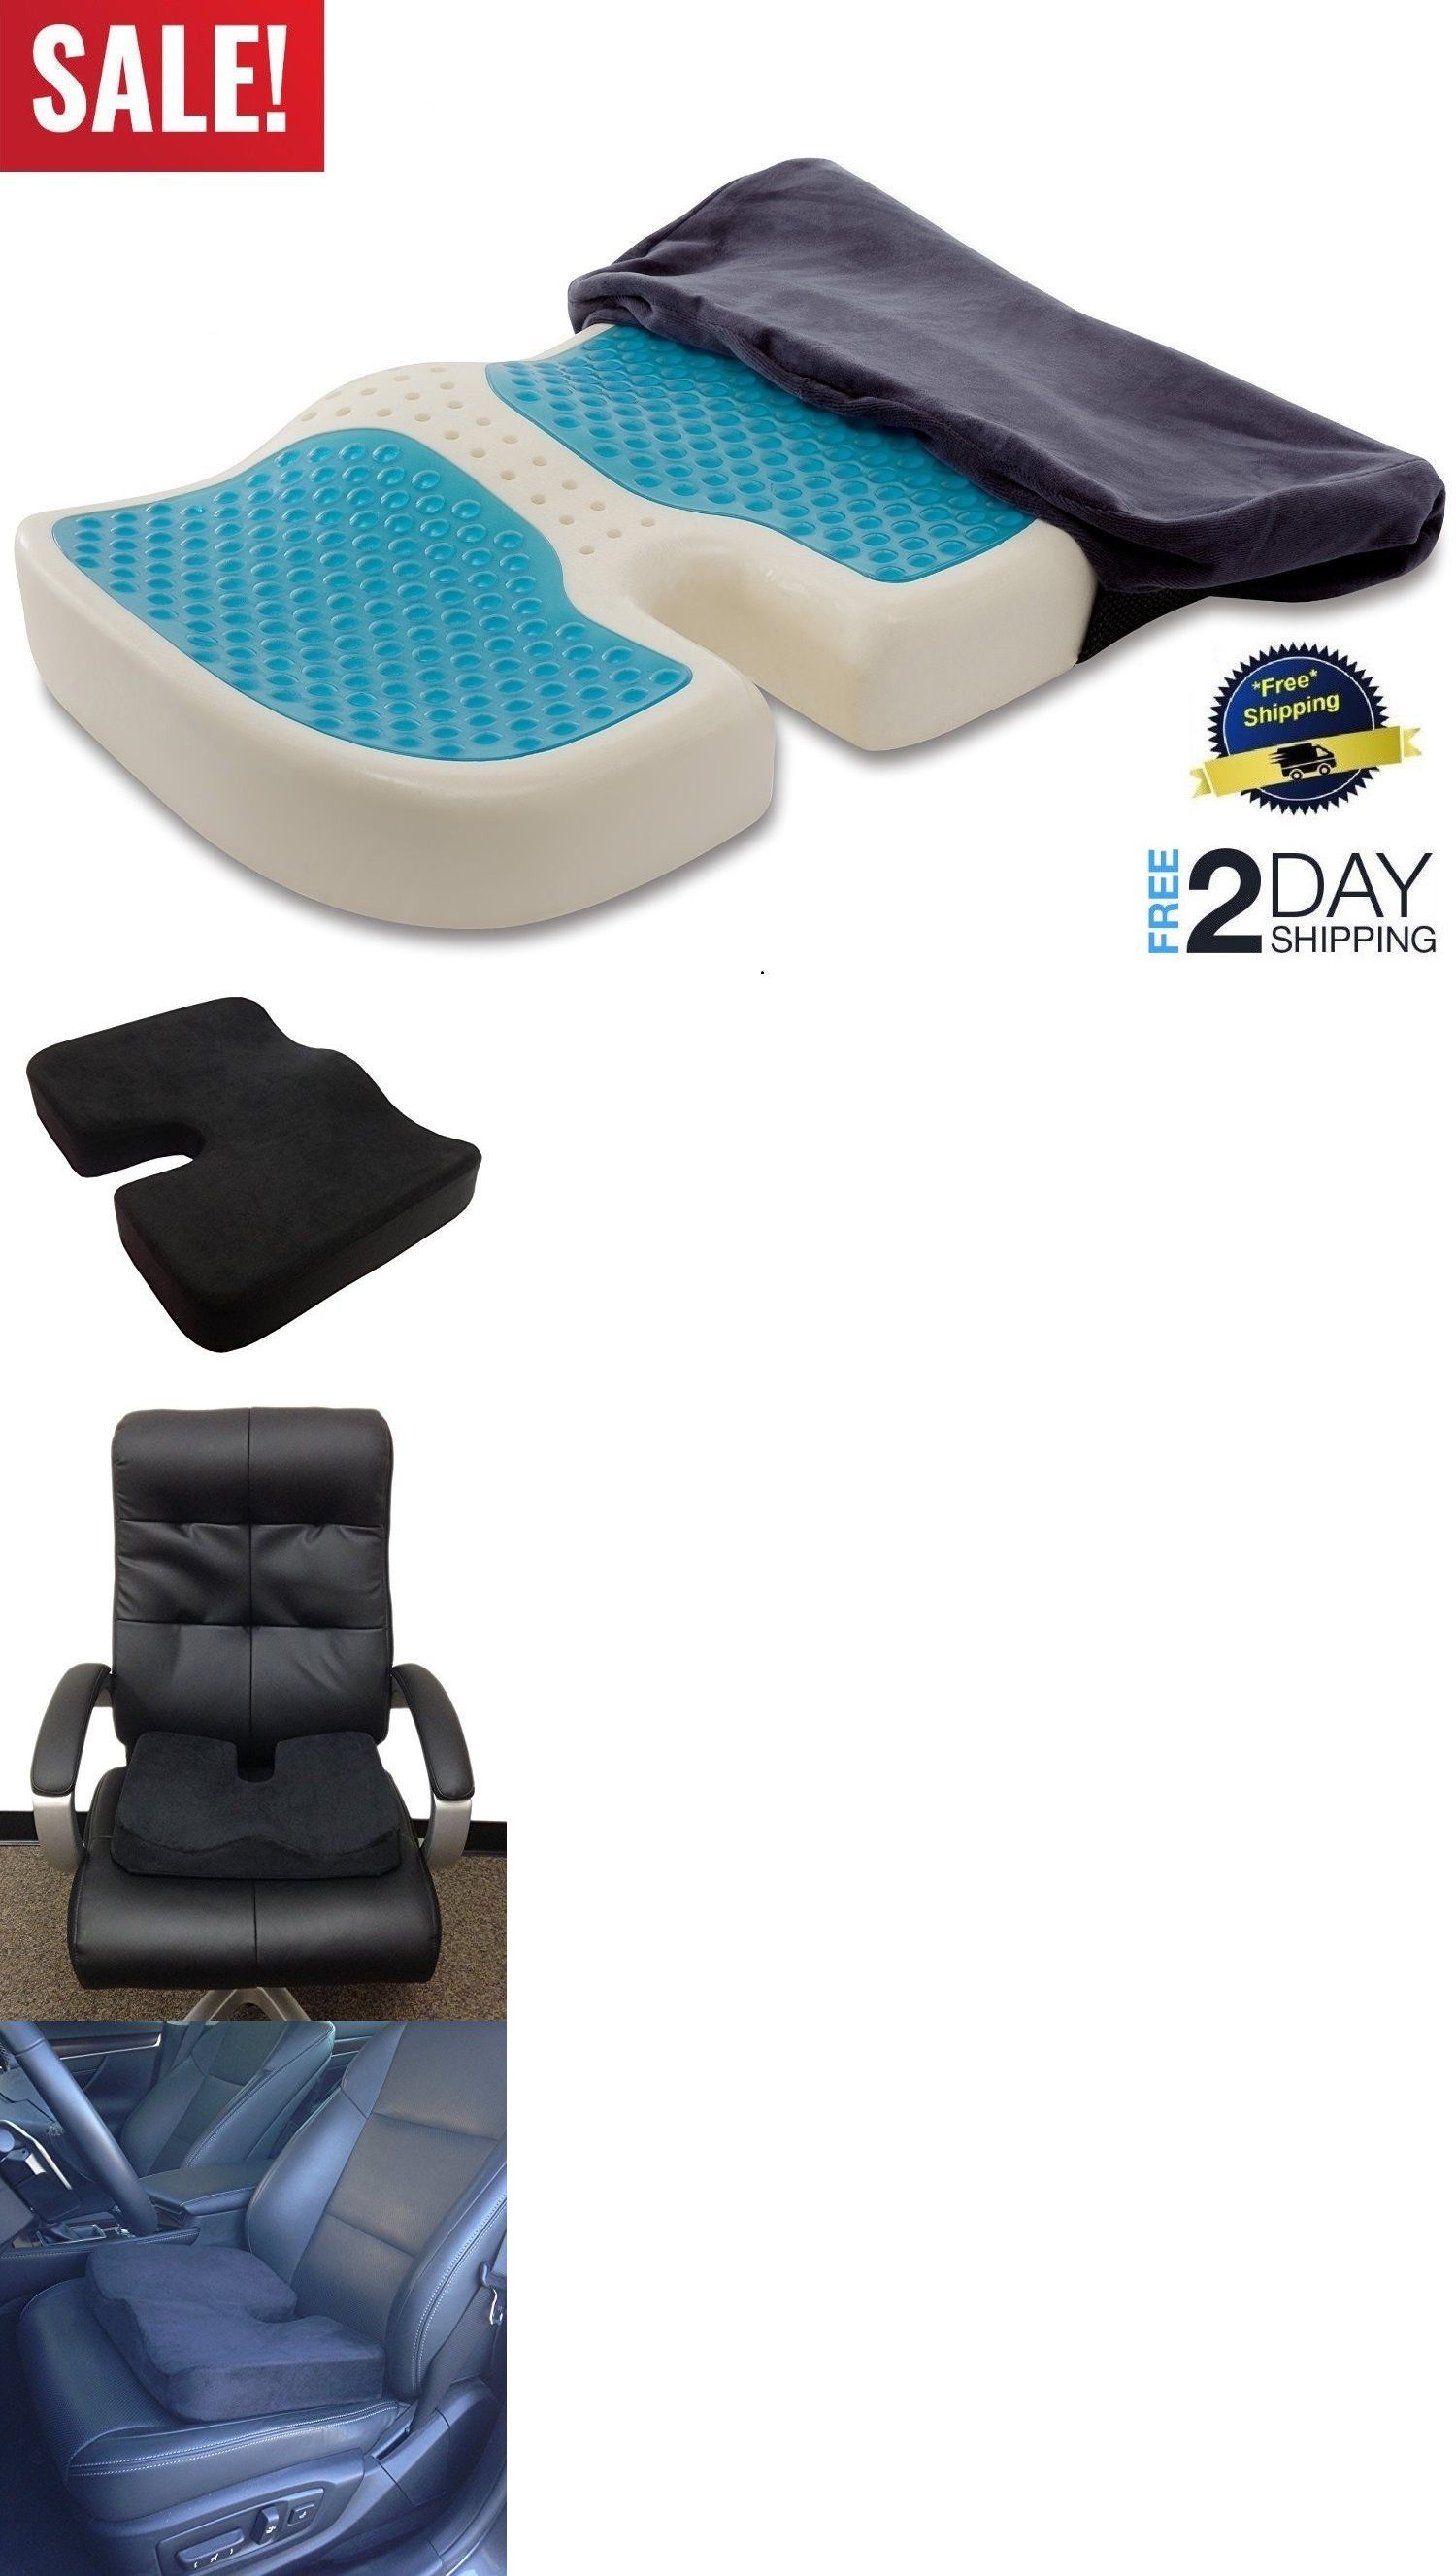 Posture Support Seat Cushion 3 In 1 Chair Coccyx Orthopedic Gel Foam Enhanced Comfort Pad And Cushions 182135 Back Buy It Now Only 24 95 On Ebay